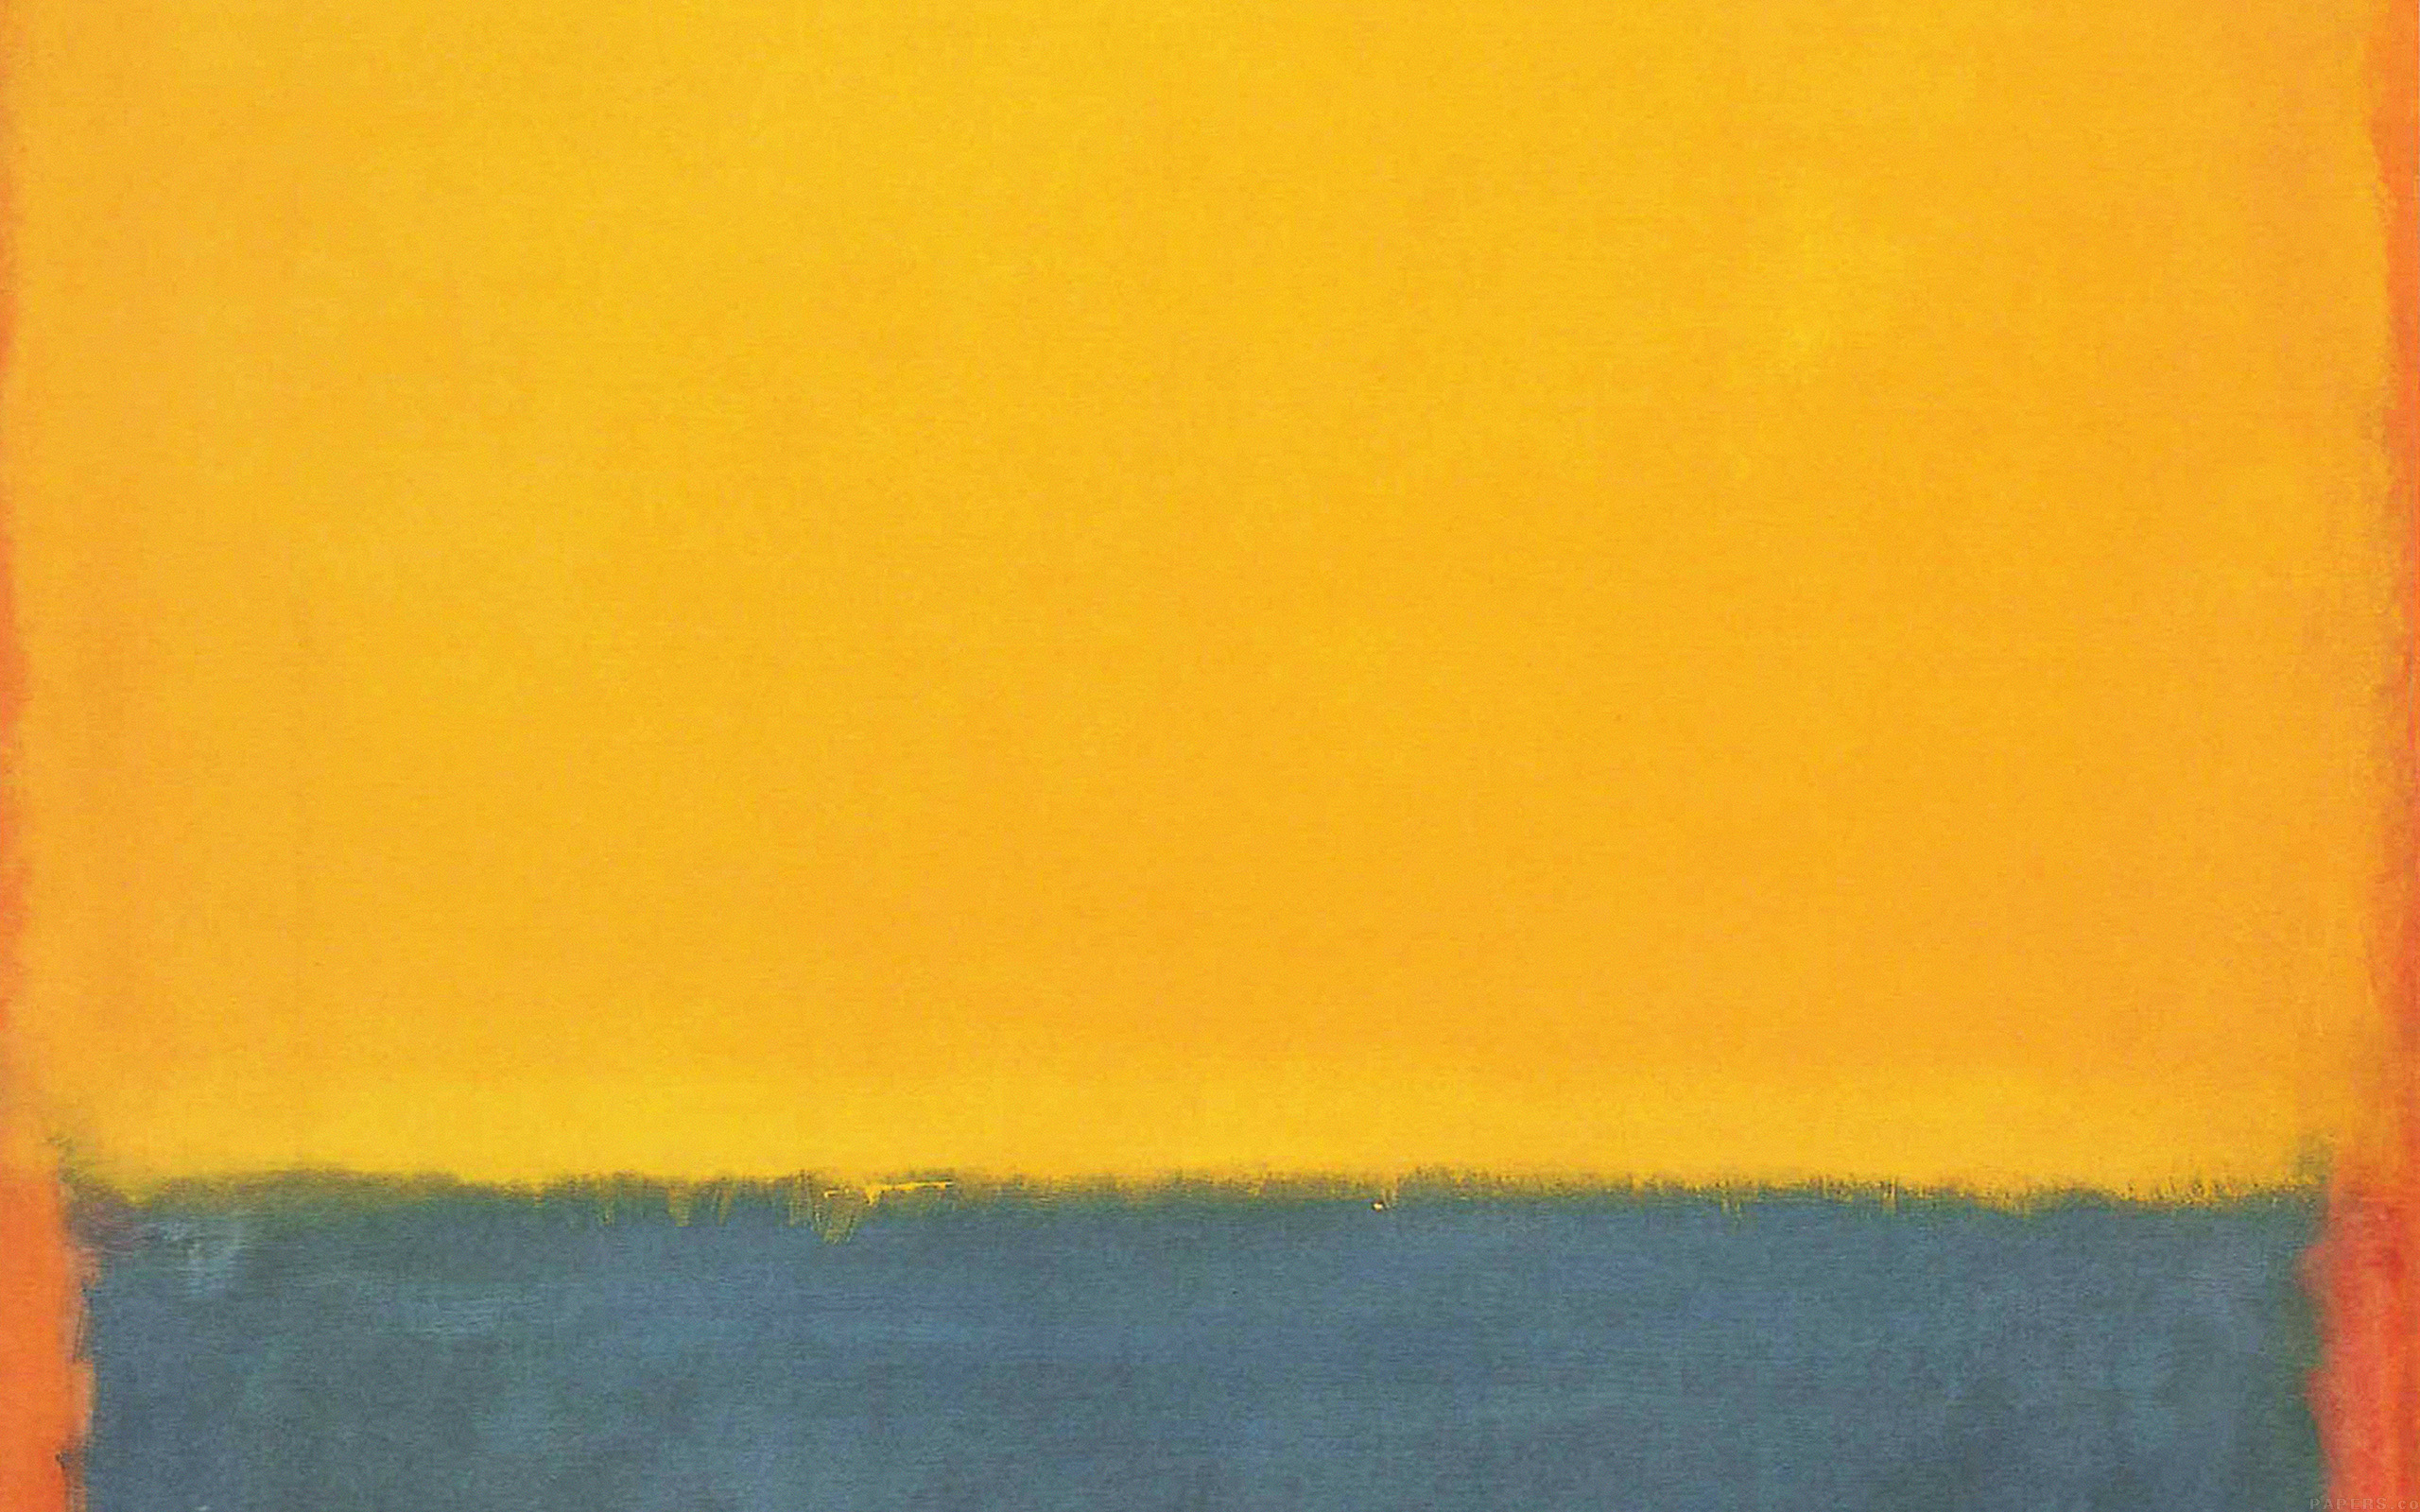 Red Car Wallpaper Desktop Al62 Classic Mark Rothko Style Paint Art Yellow Papers Co